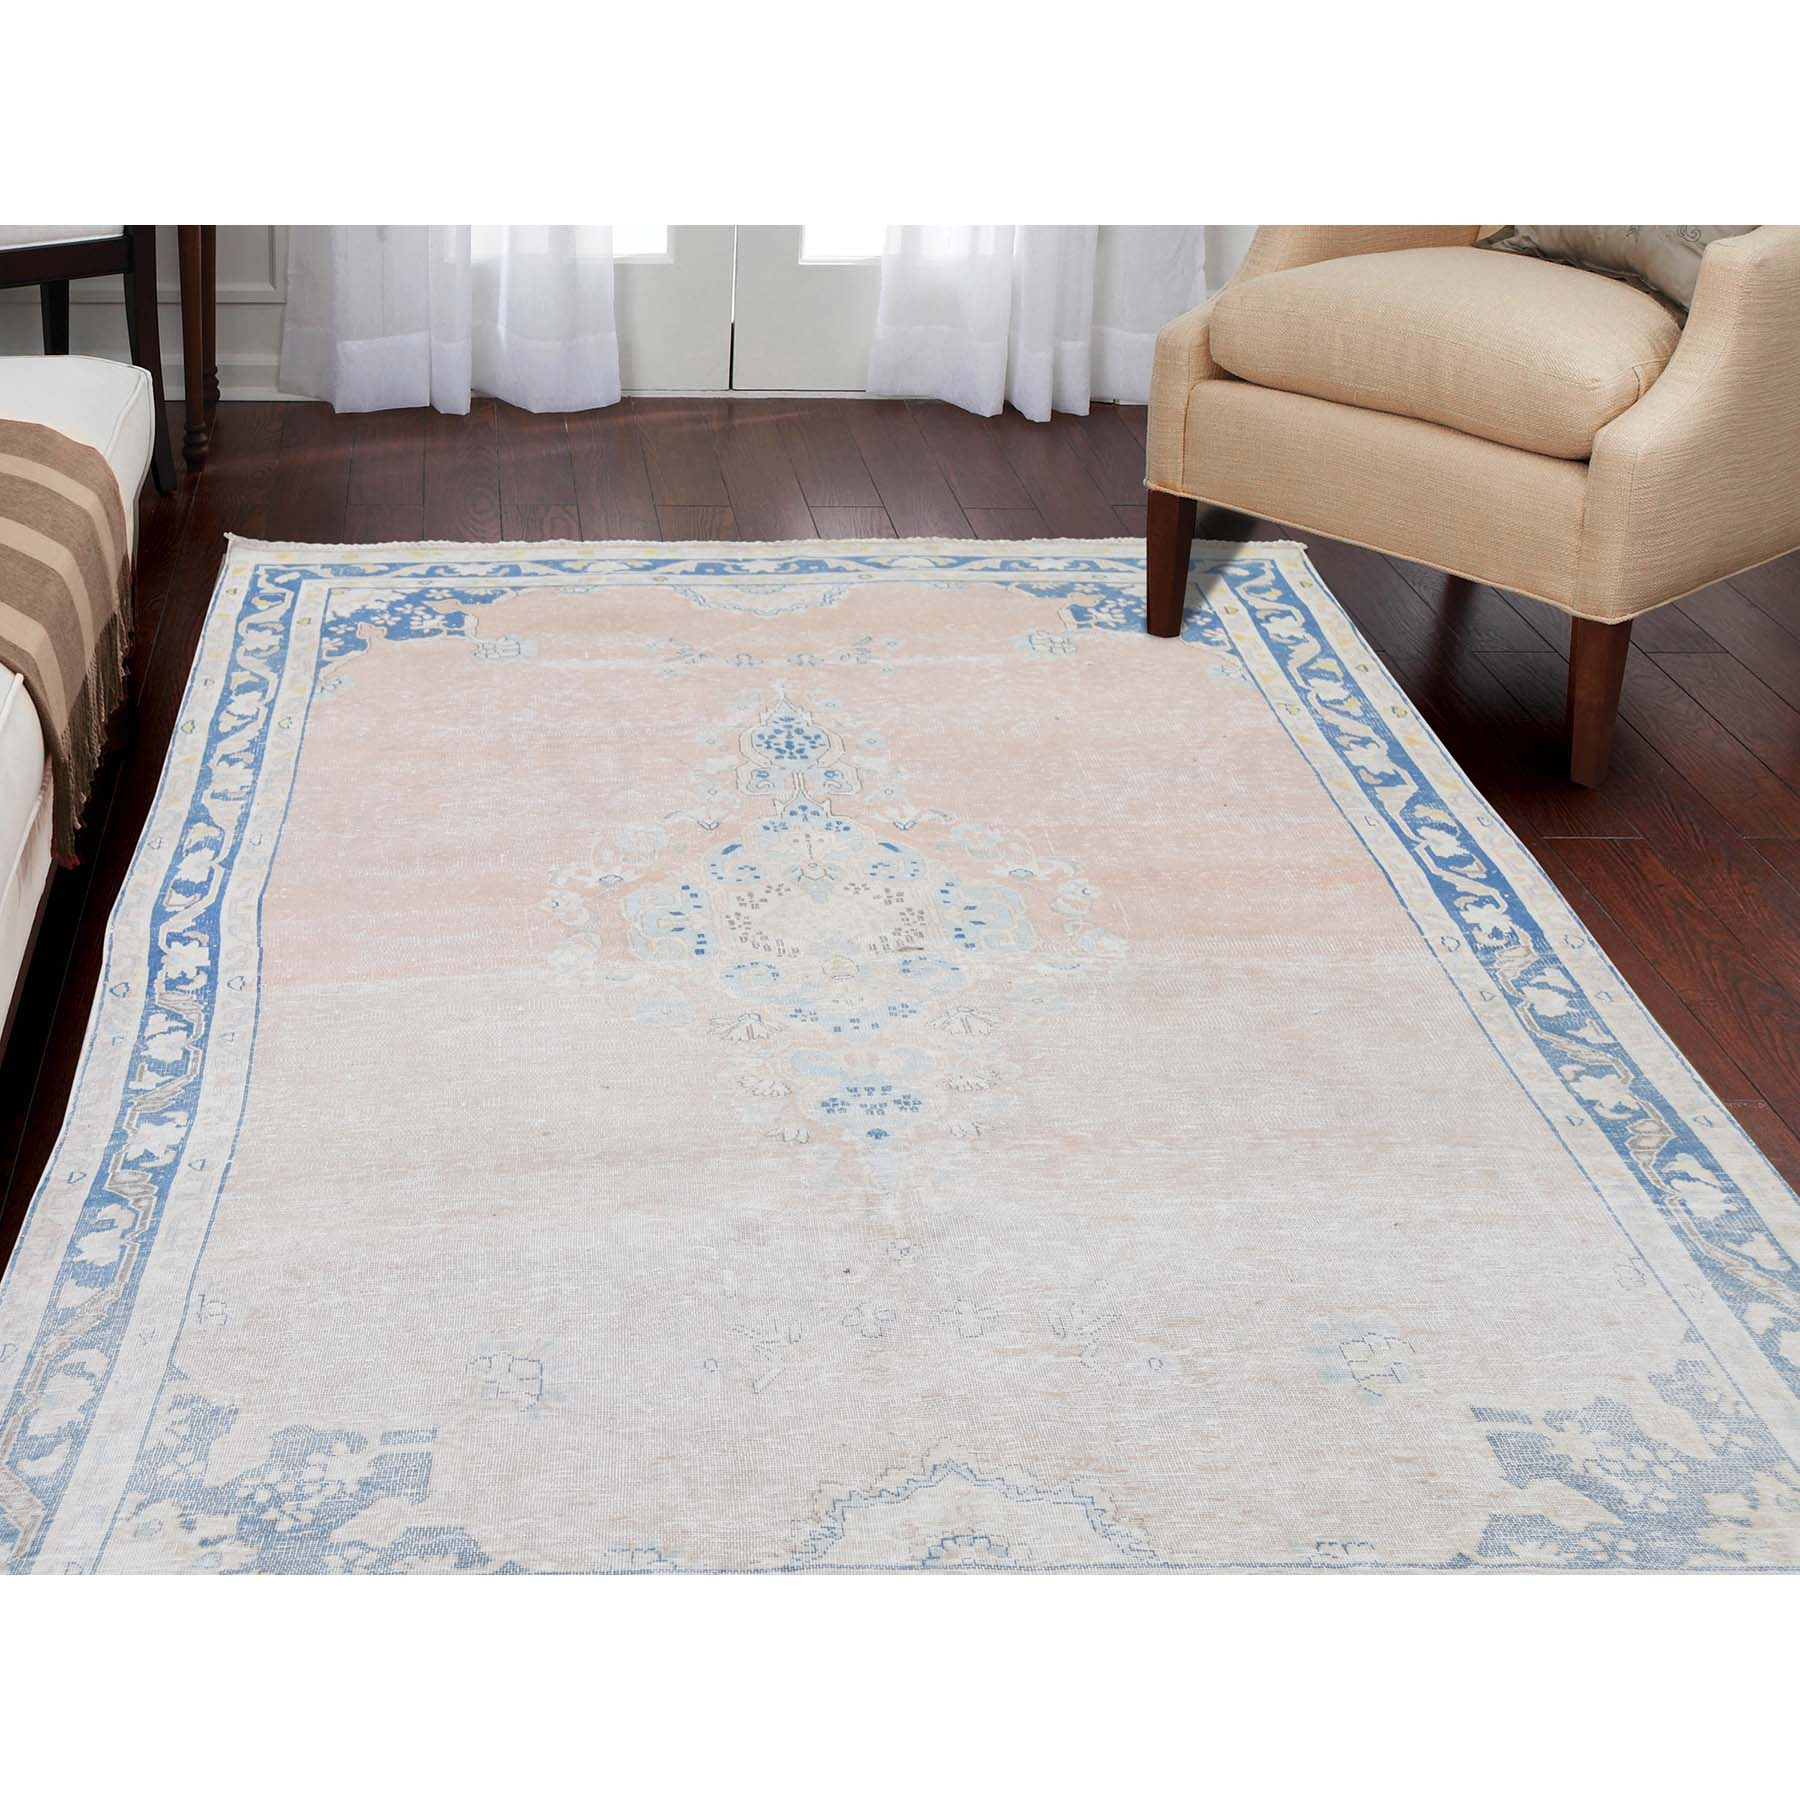 4-7 x7-6  Hand-Knotted White Wash Vintage Kerman Highlight Of Blue Worn Pile Oriental Rug